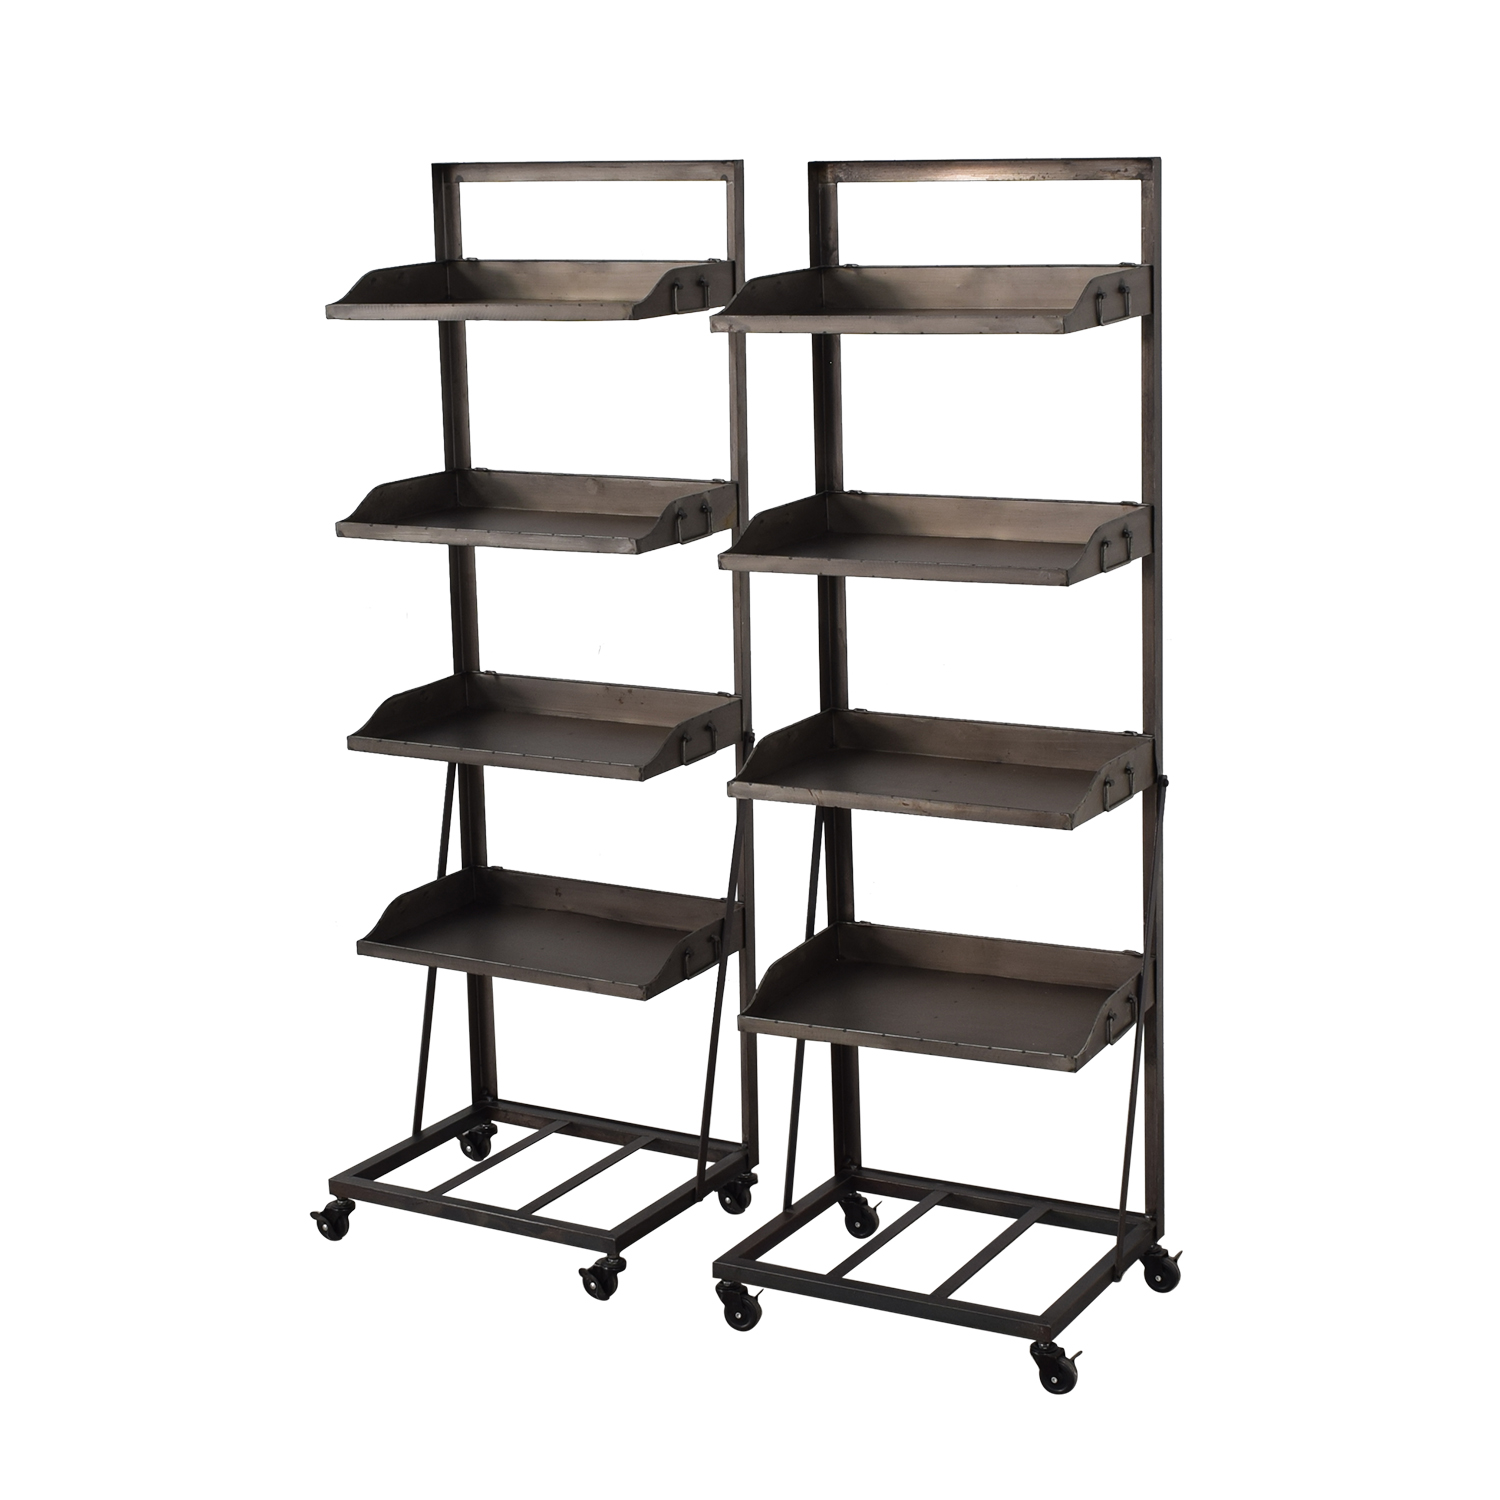 Bookshelves with Wheels used